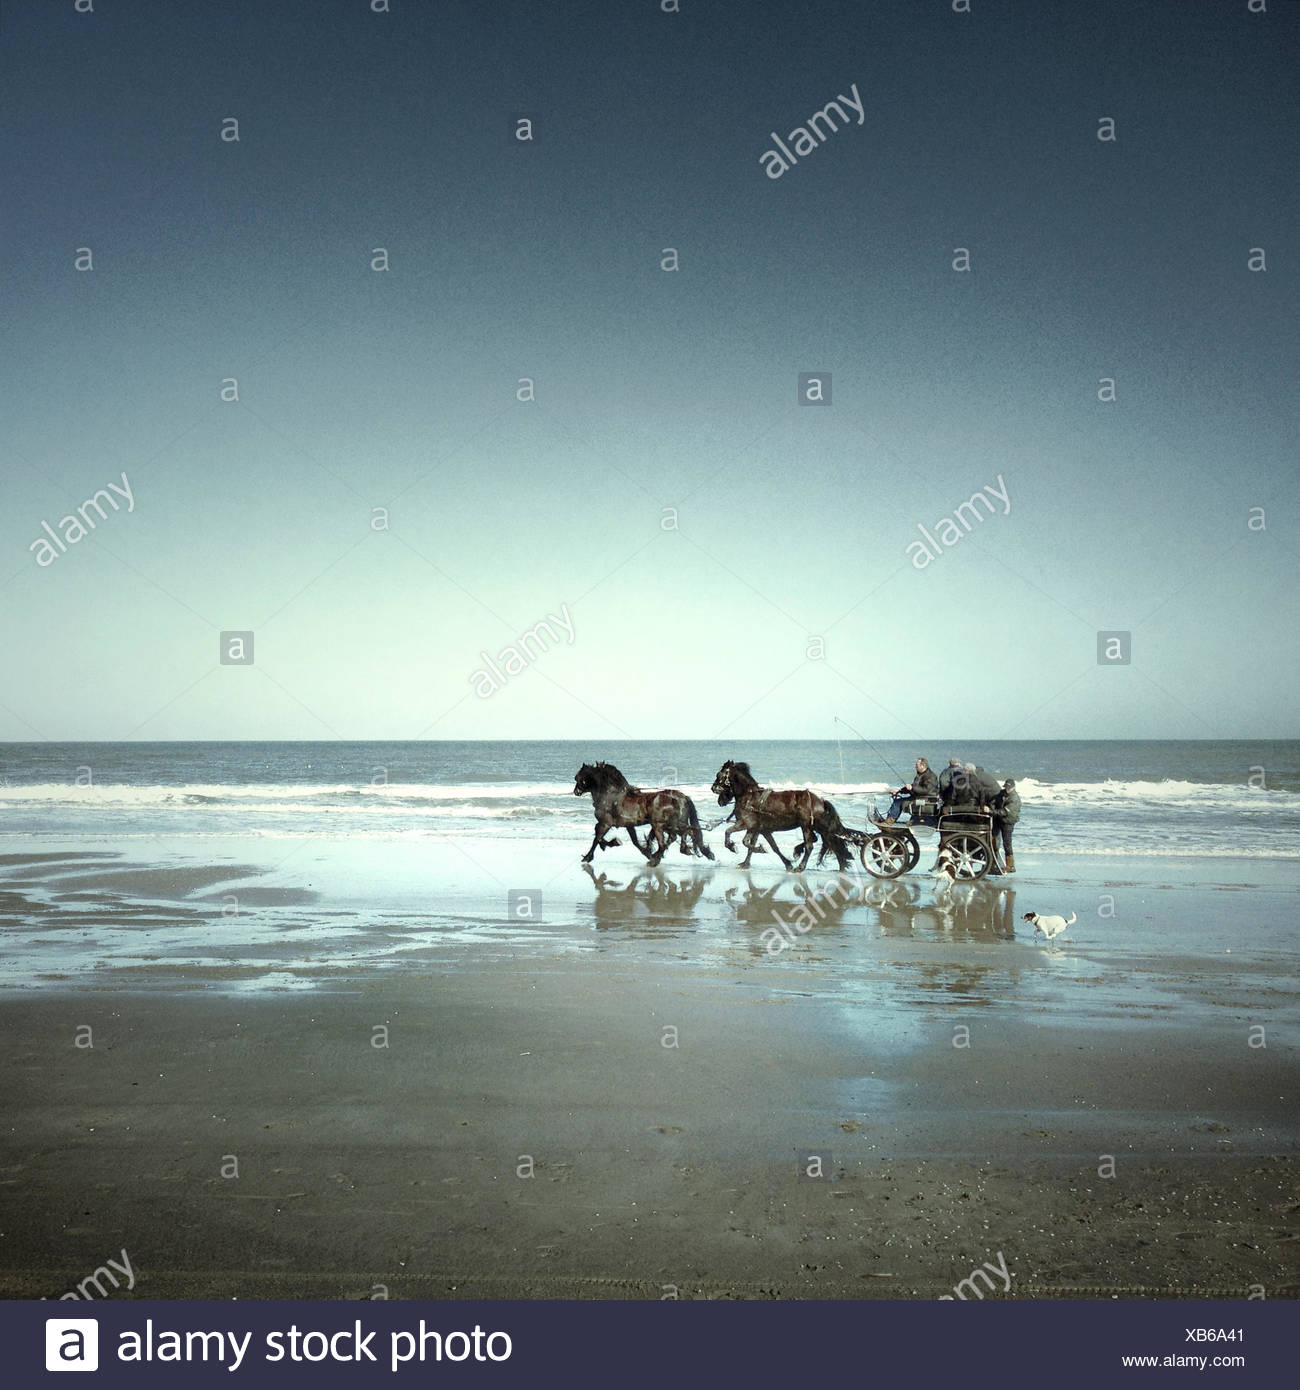 Horses and cart on beach Stock Photo